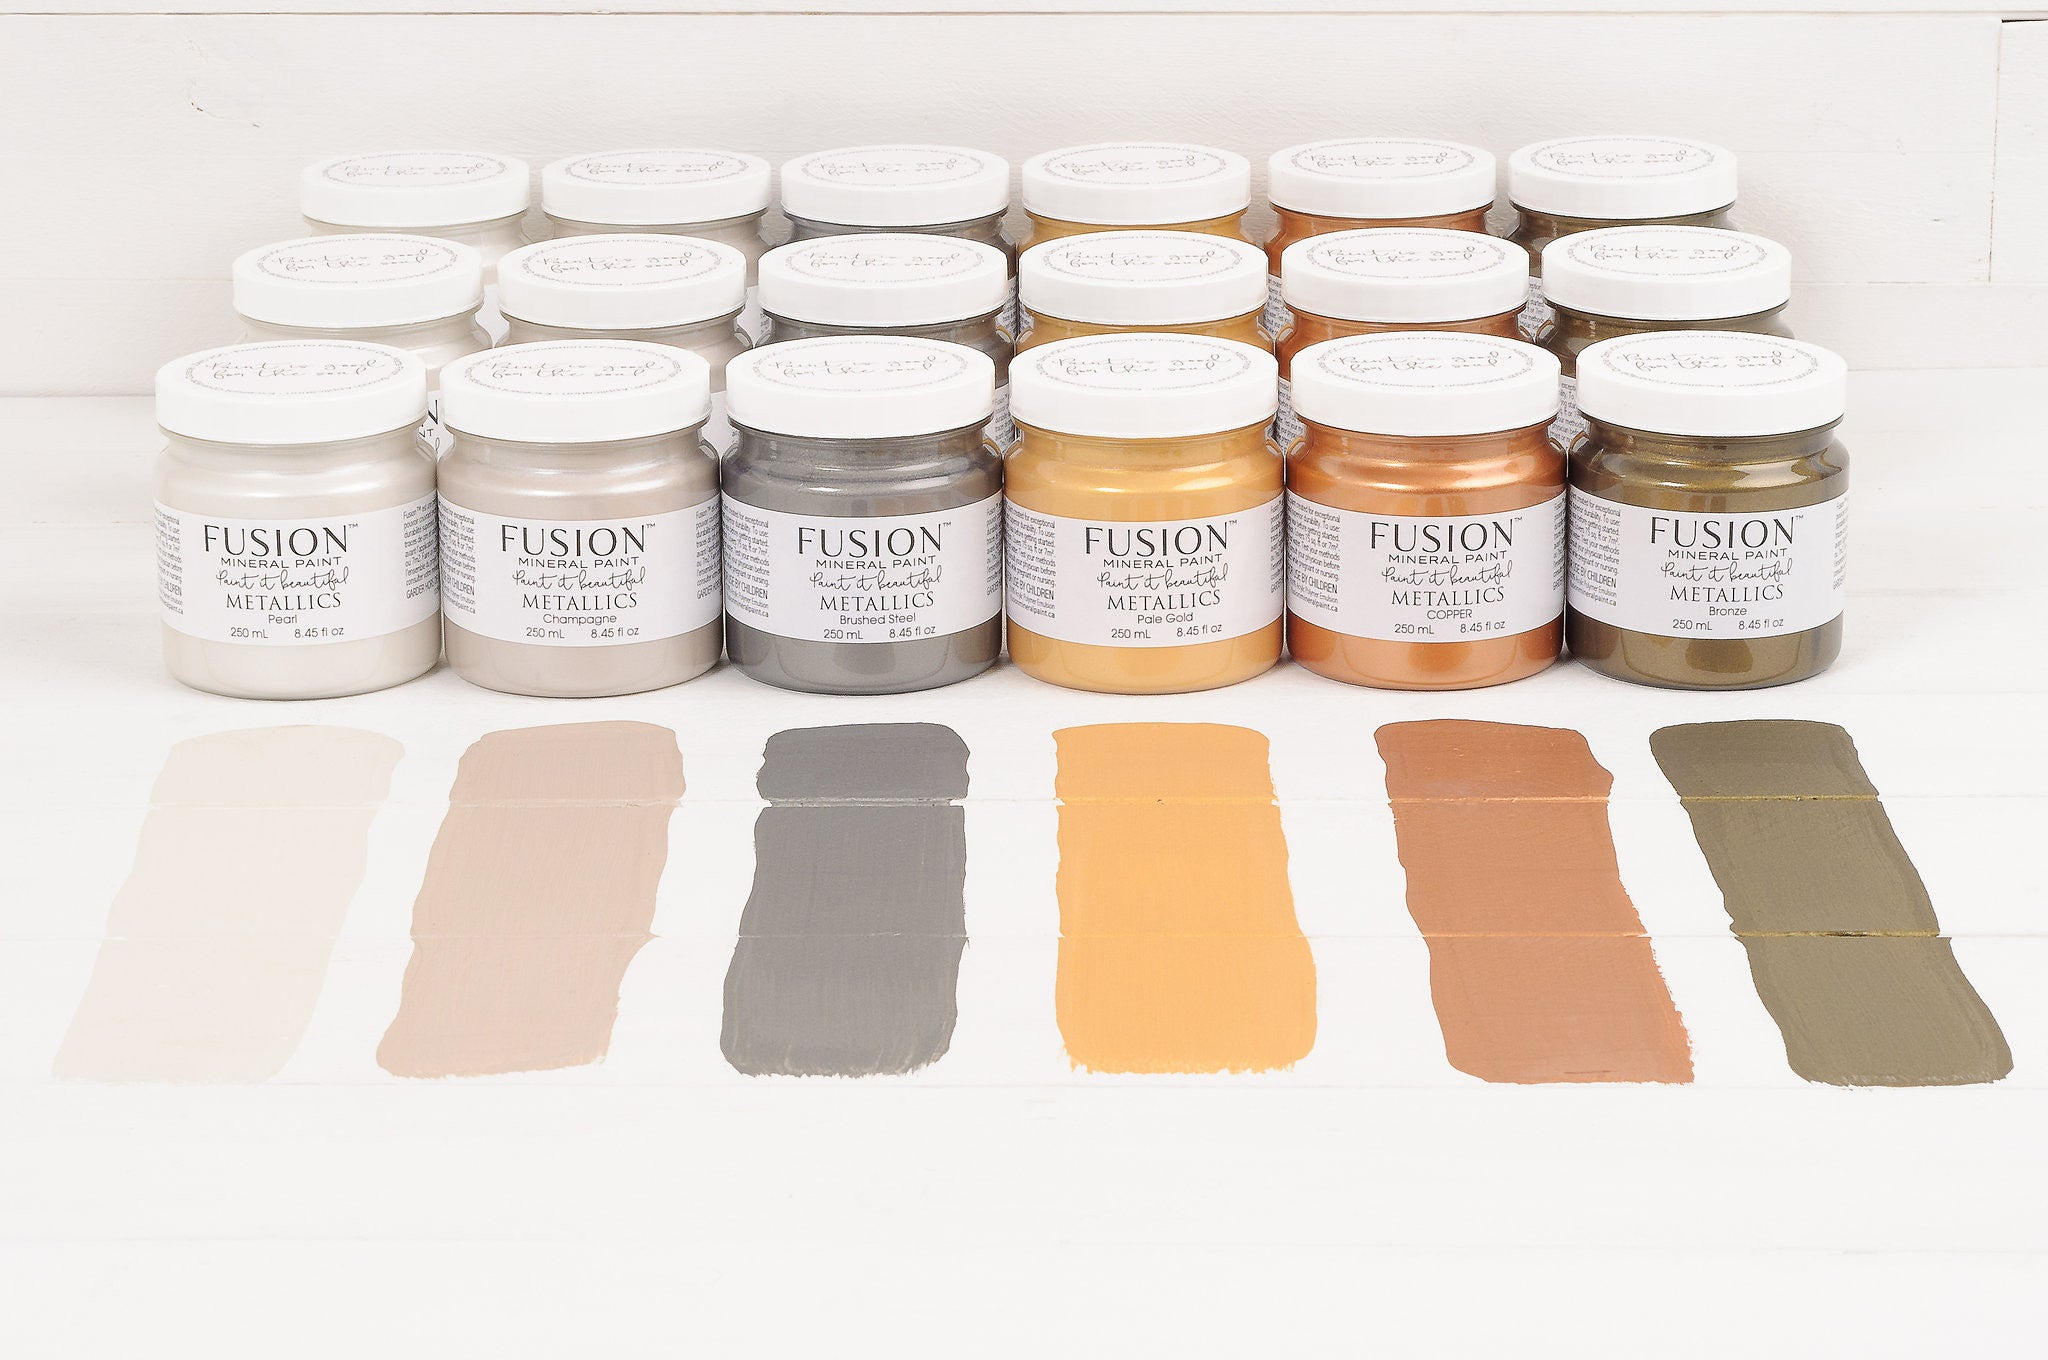 Copper Metallic Paint - Fusion Mineral Paint - Where to Buy Online - Dear Olympia - Flate Rate US Shipping